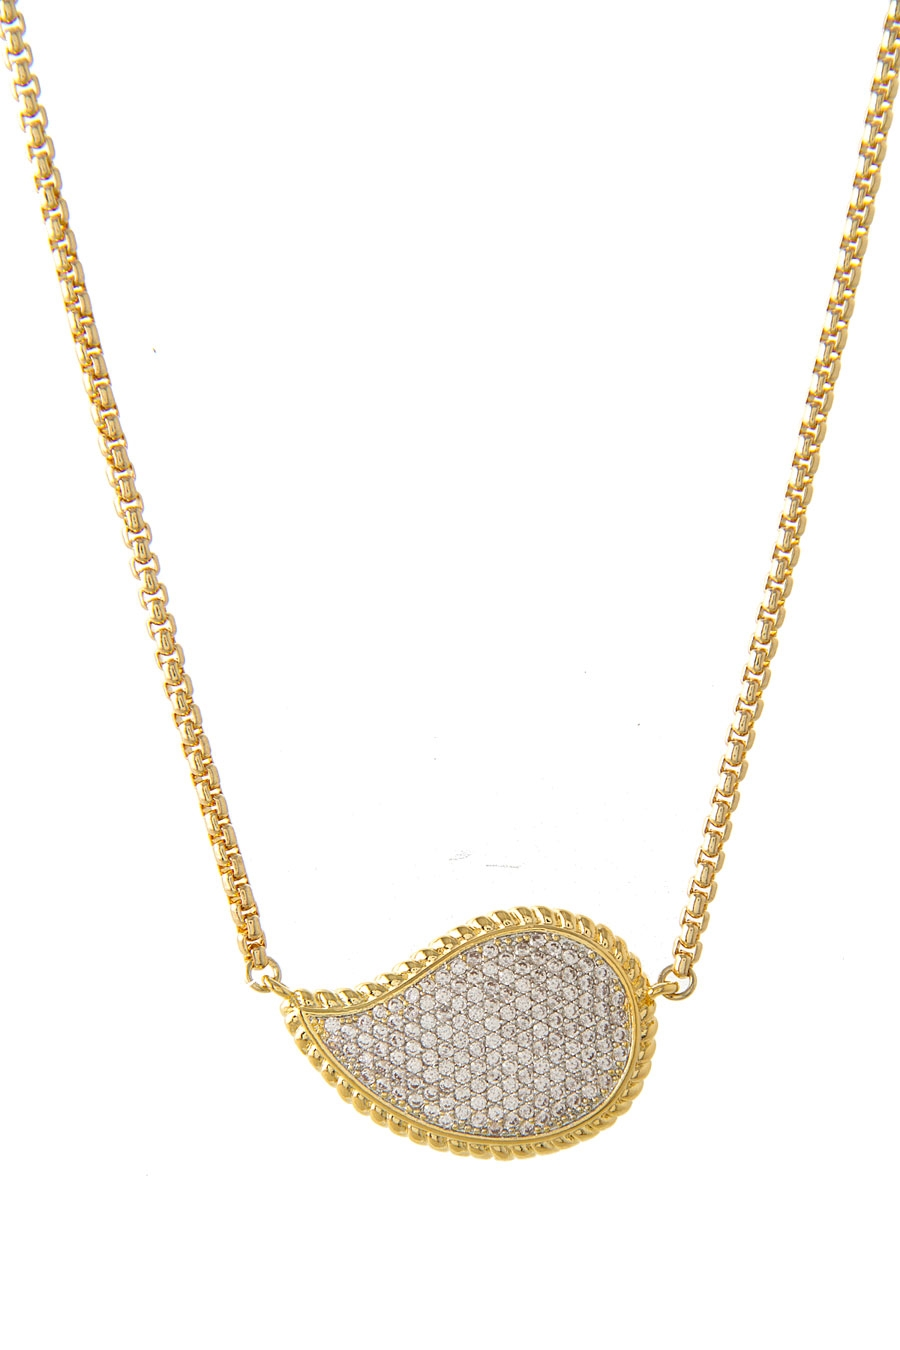 PAISLEY PAVE PENDANT NECKLACE - orangeshine.com